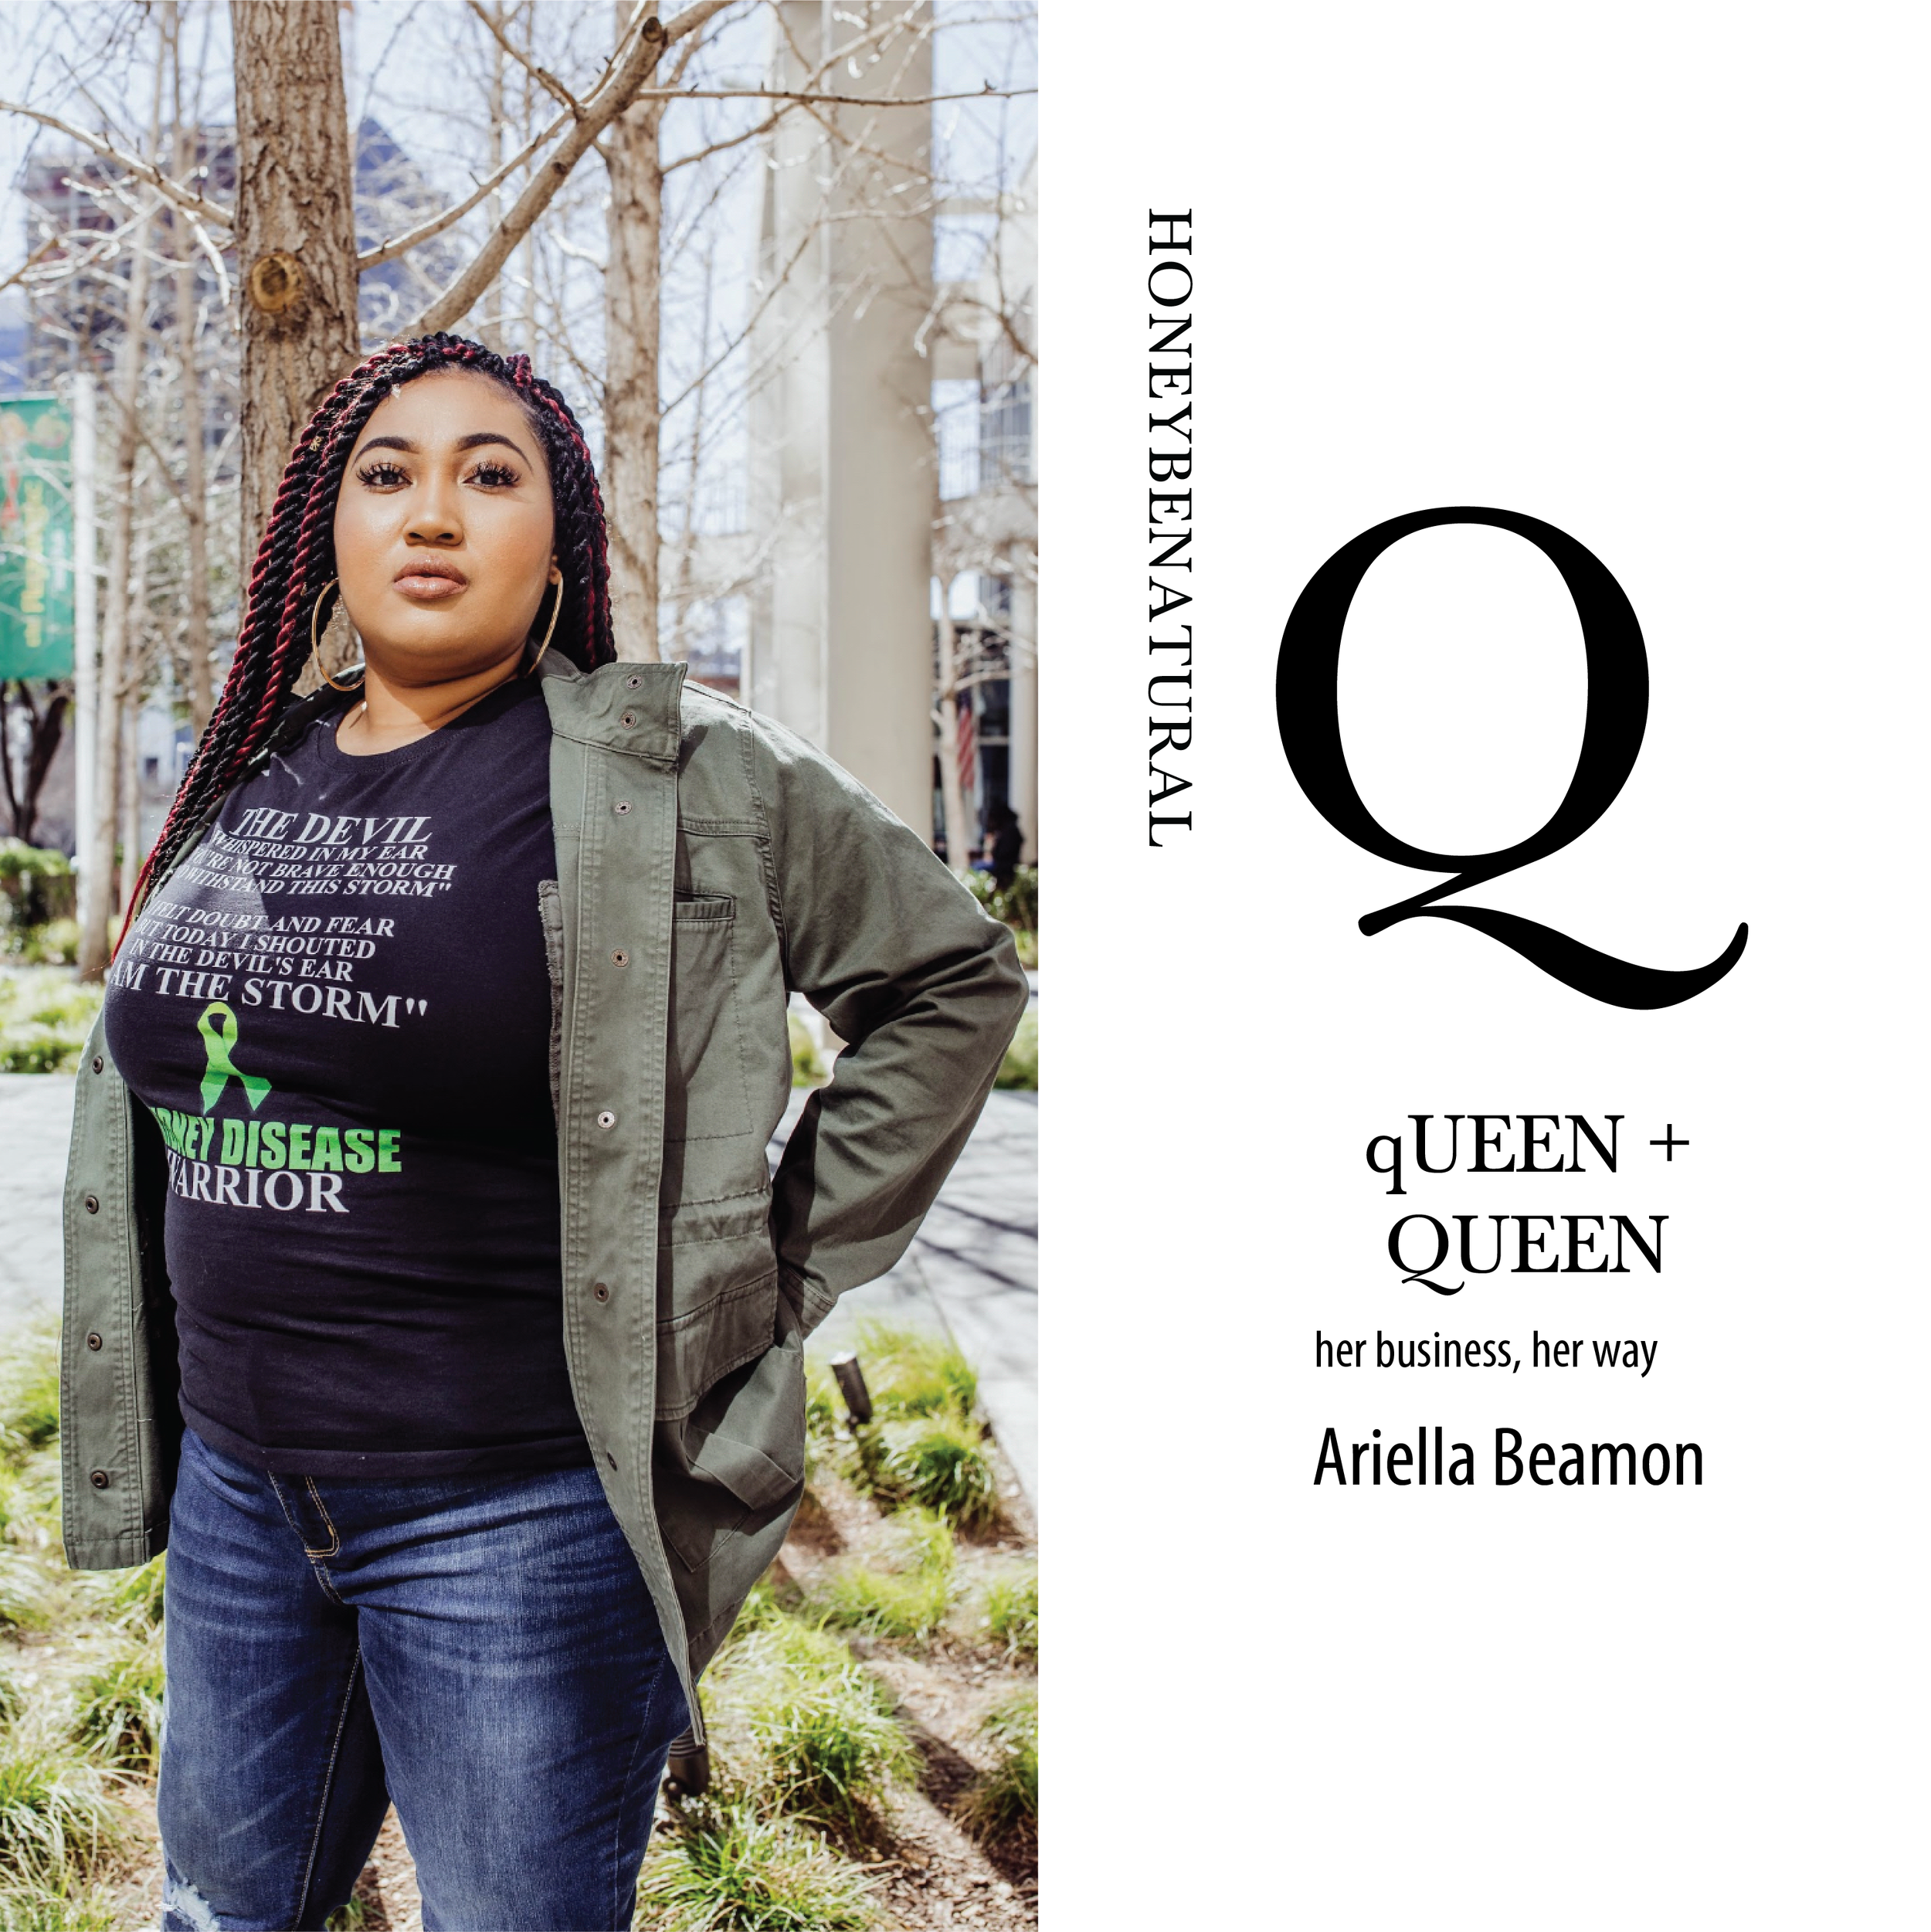 QueenPlusQueen_July 2019_Ariella Beamon_Title-01.png